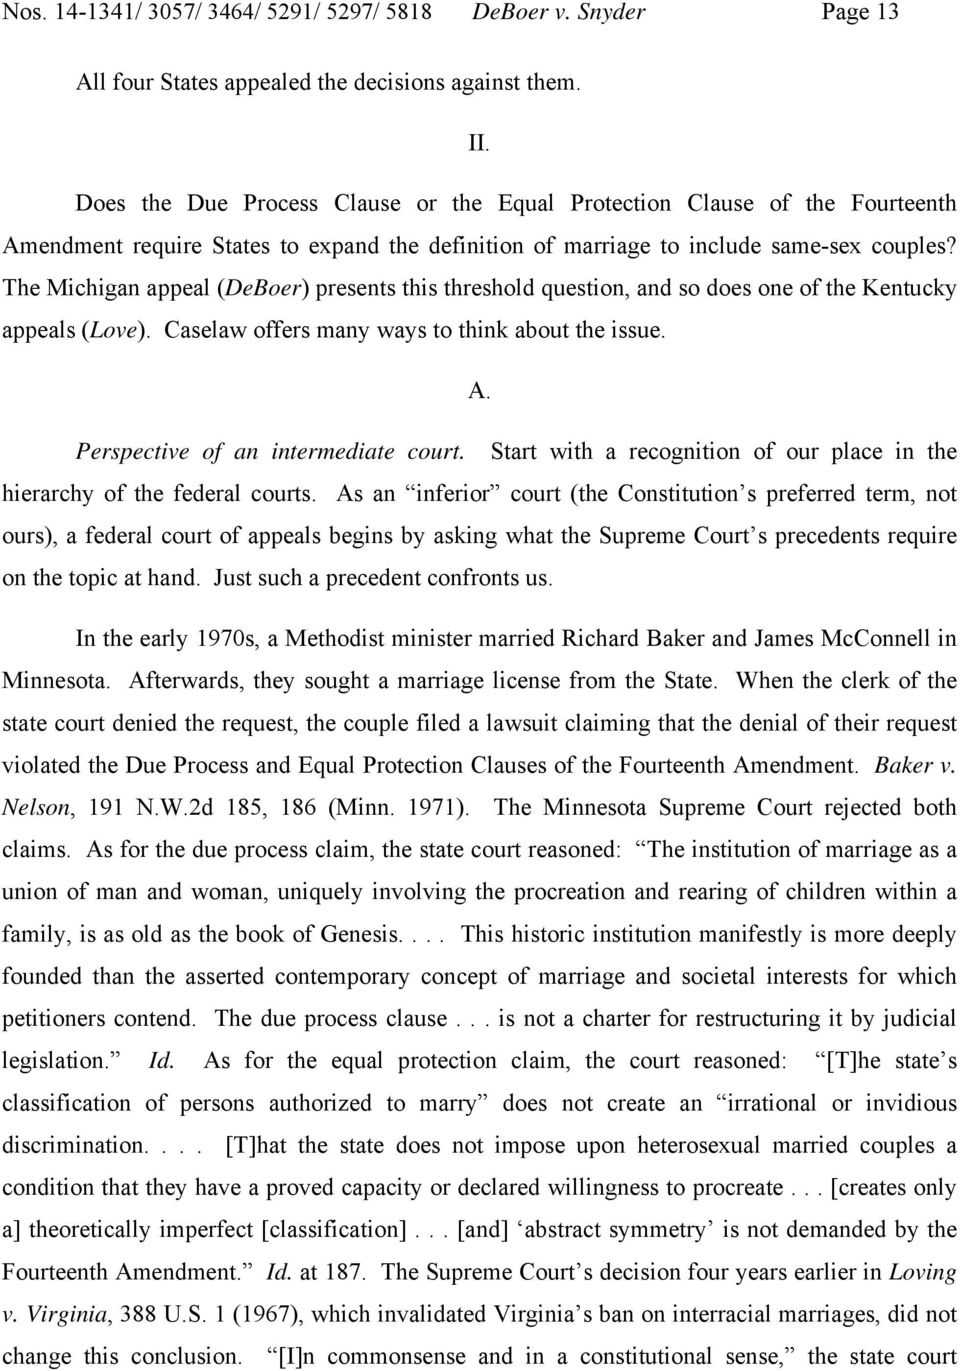 The Michigan appeal (DeBoer) presents this threshold question, and so does one of the Kentucky appeals (Love). Caselaw offers many ways to think about the issue. A.